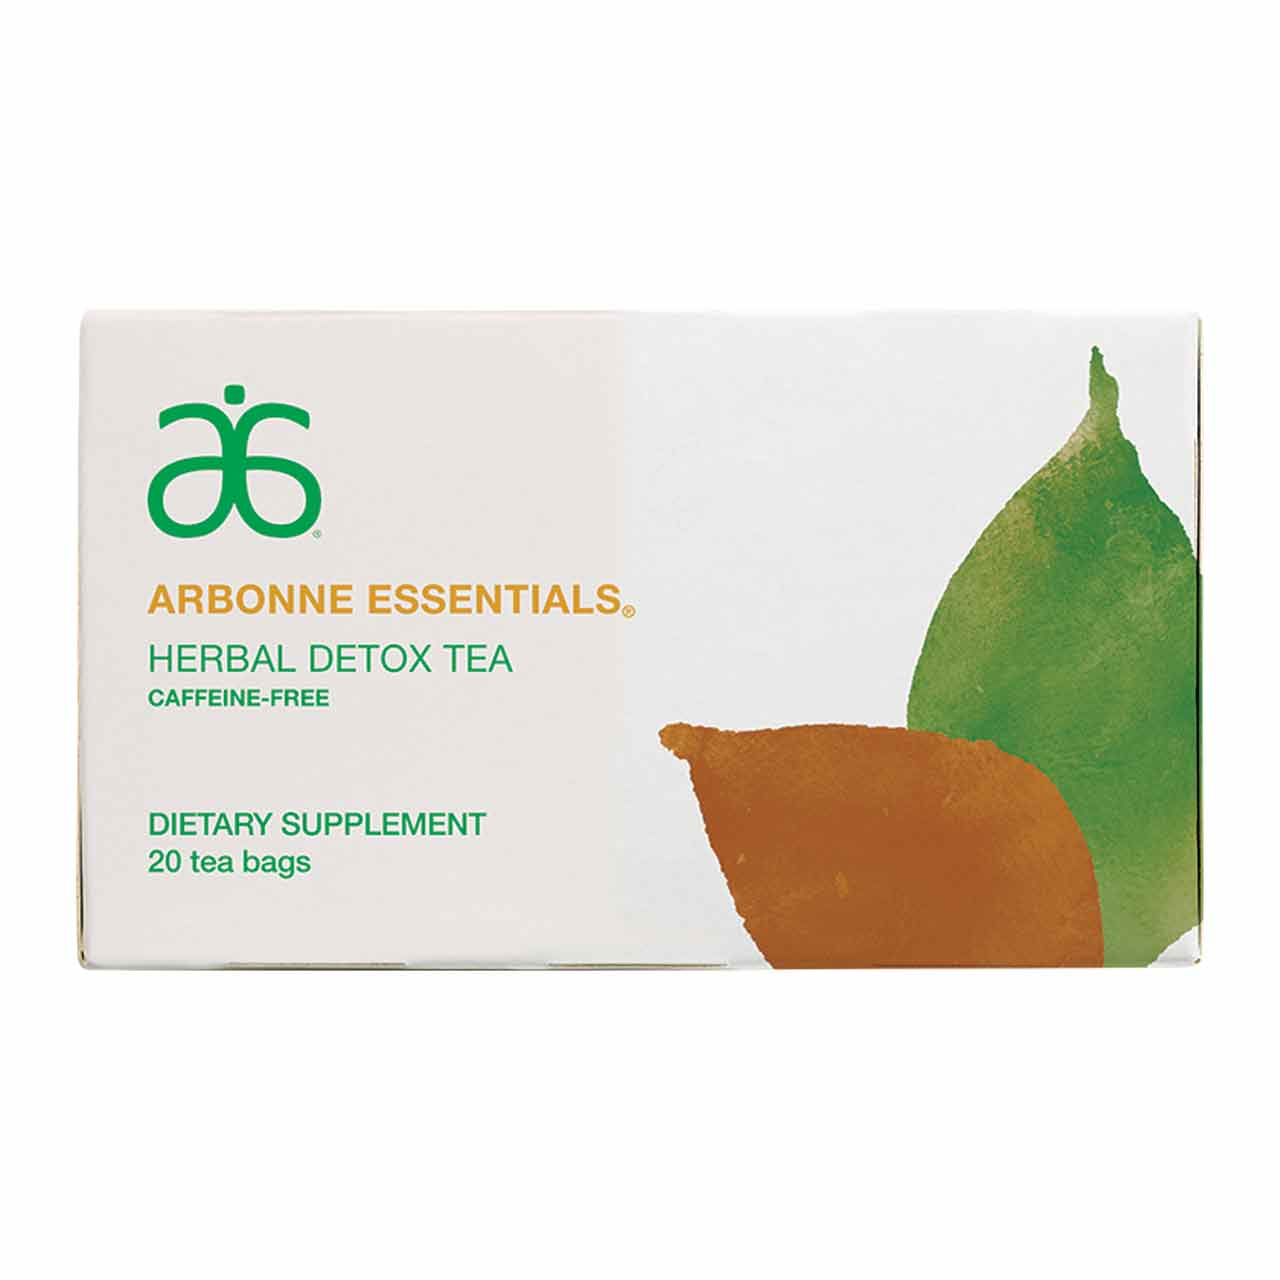 Arbonne Essentials Detox Tea